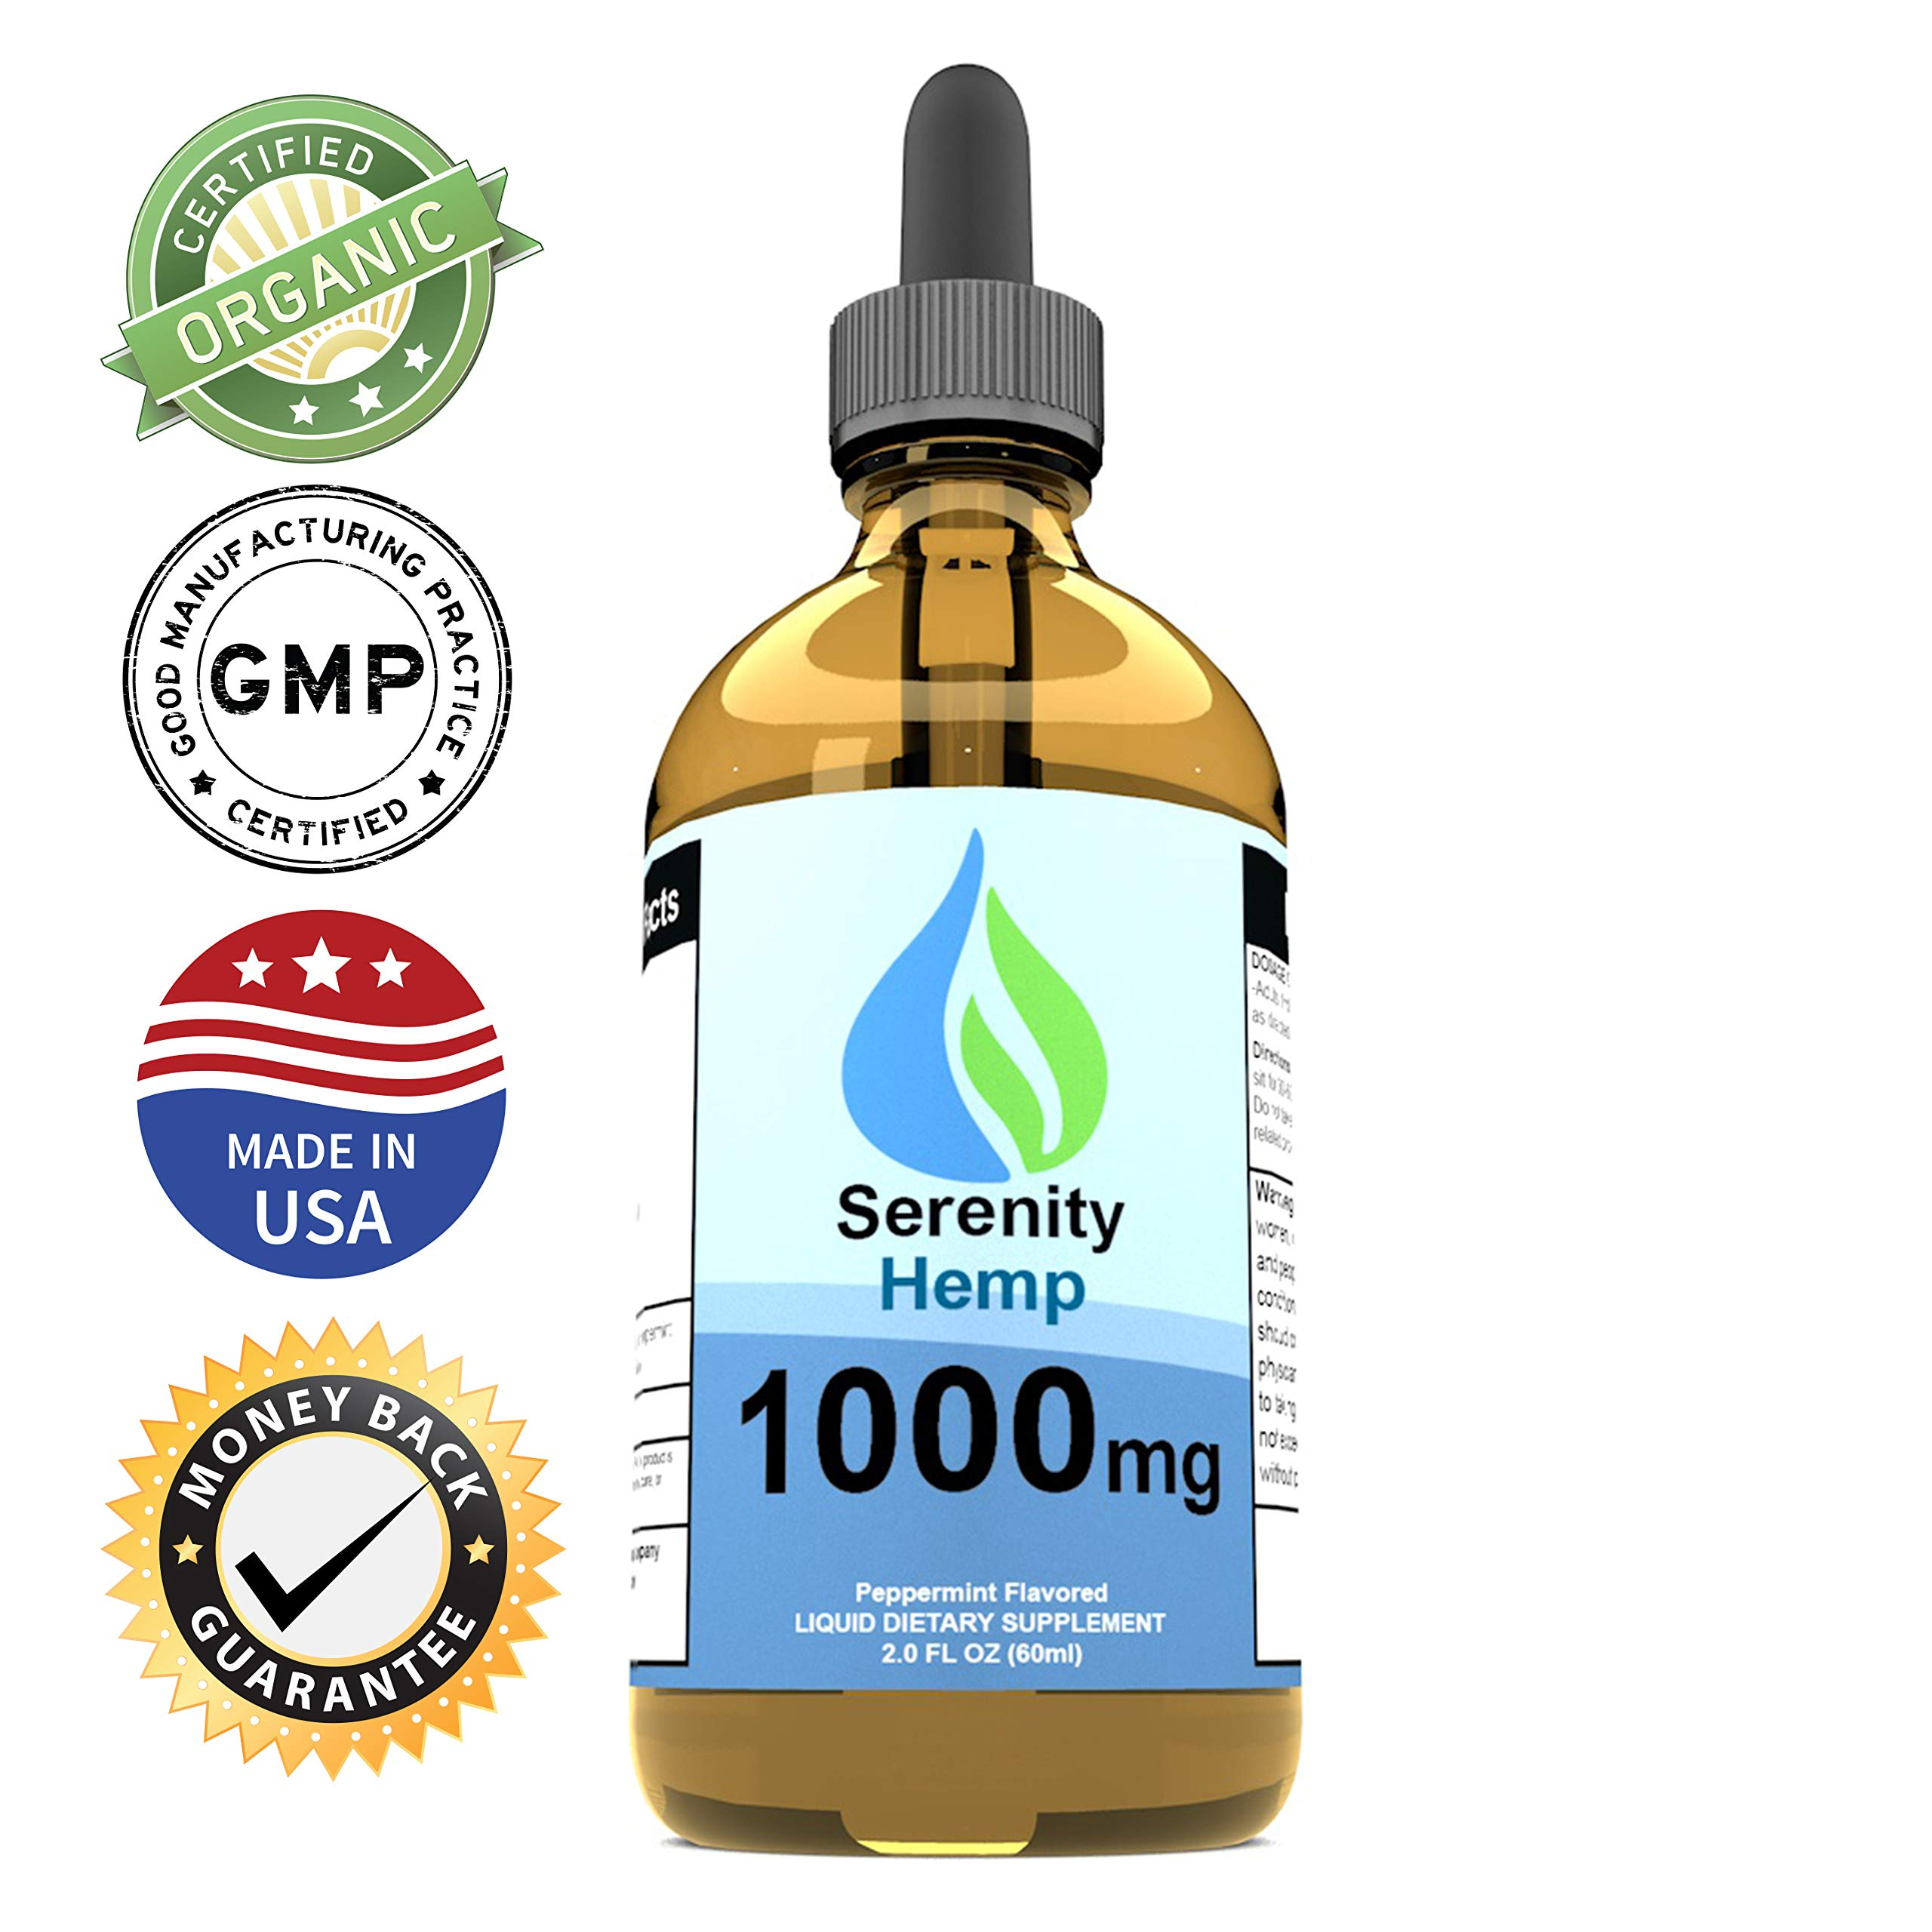 Serenity Hemp Oil - 2 fl oz 1000 mg Peppermint Flavored - Relief for Stress, Inflammation, Pain, Sleep, Anxiety, Depression, Nausea - Rich in Vitamin E, Vitamin B, Omega 3,6,9 and More! by Serenity